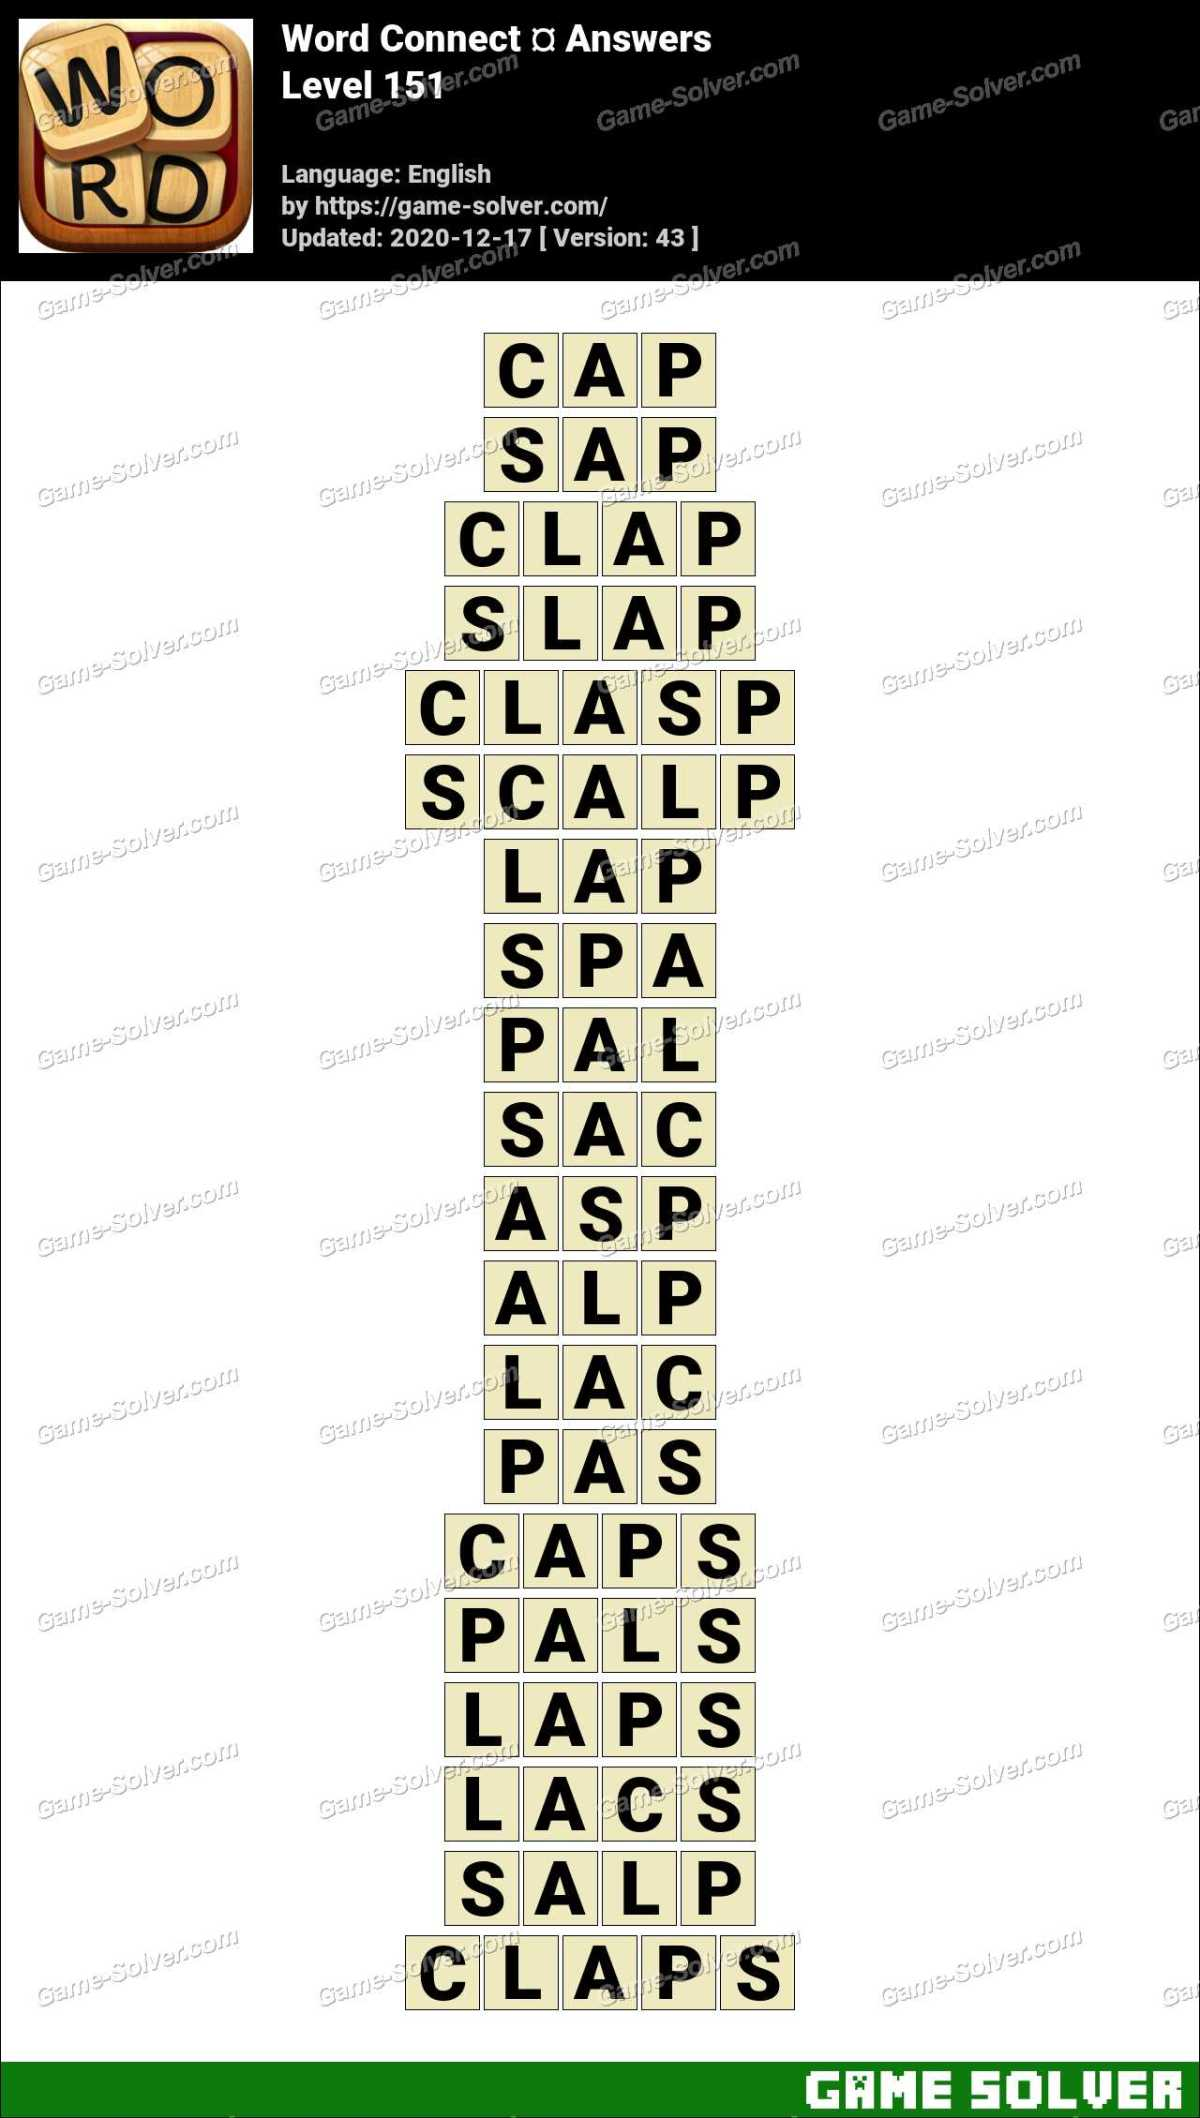 Word Connect Level 151 Answers